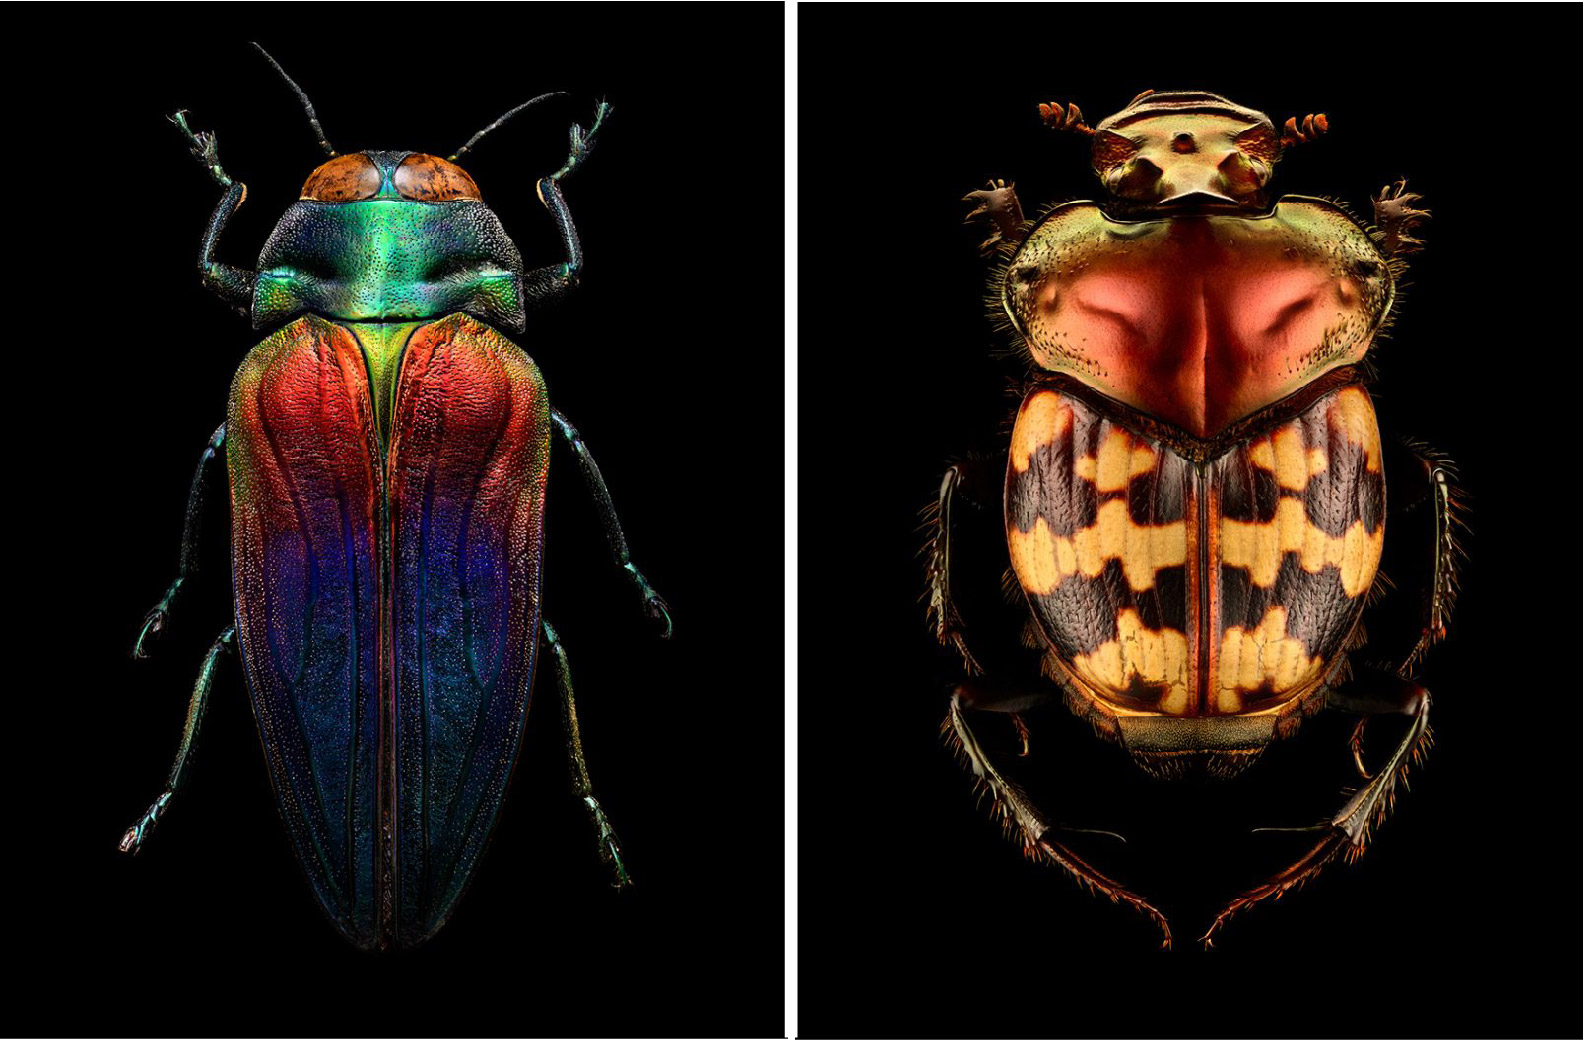 insect-portraits-under-the-microscope-by-levon-biss-17